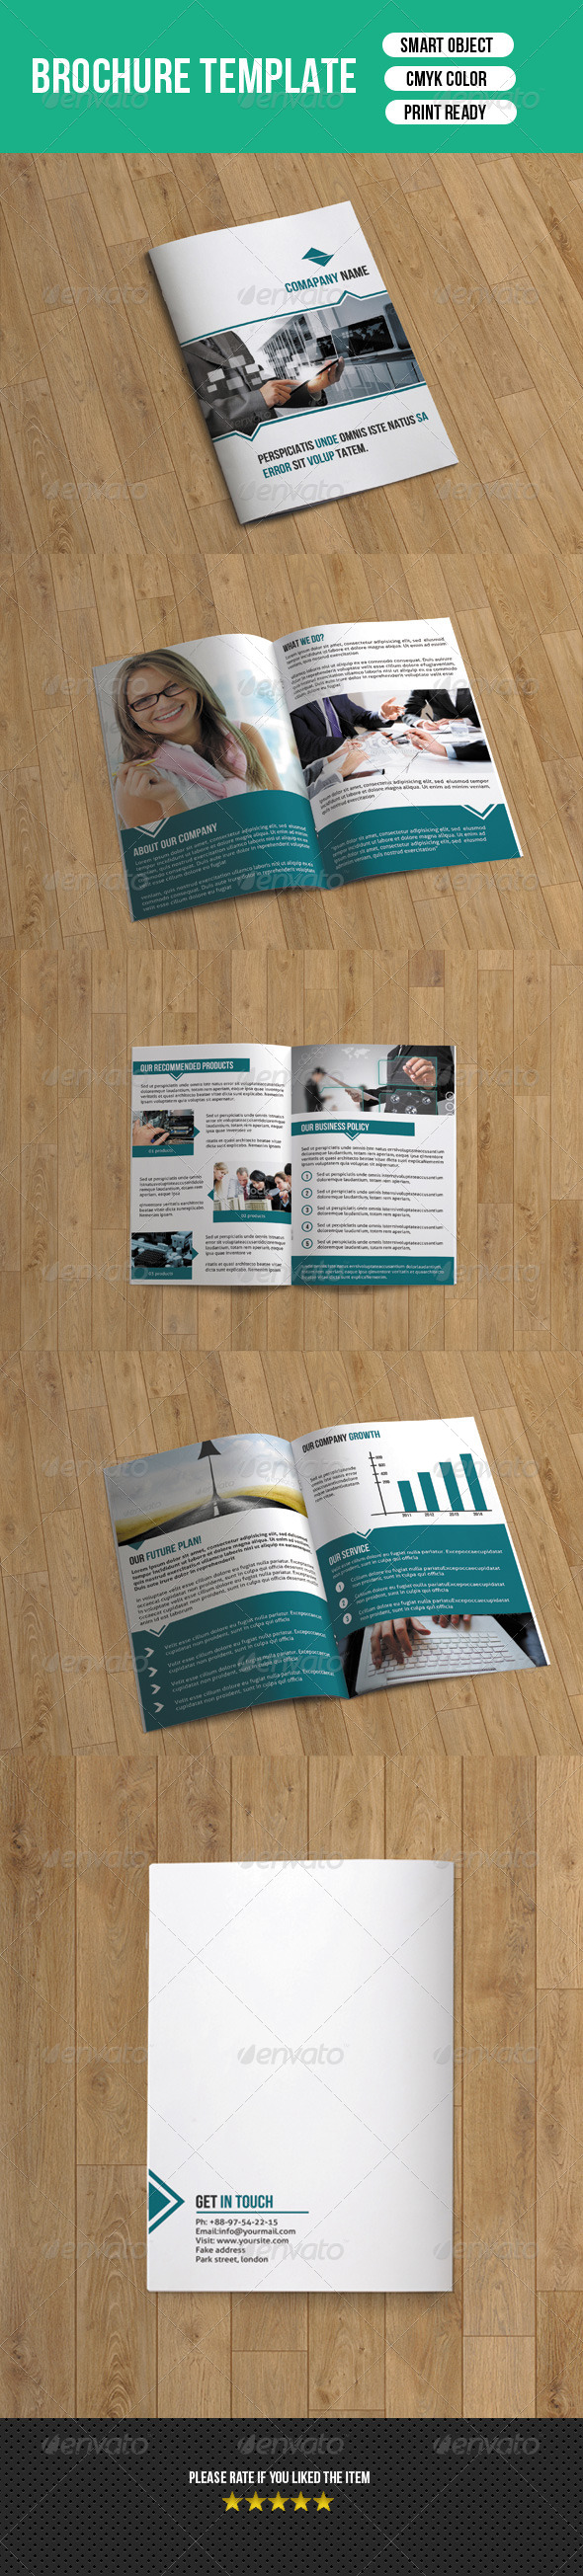 8 Page Business Brochure-V12 - Corporate Brochures